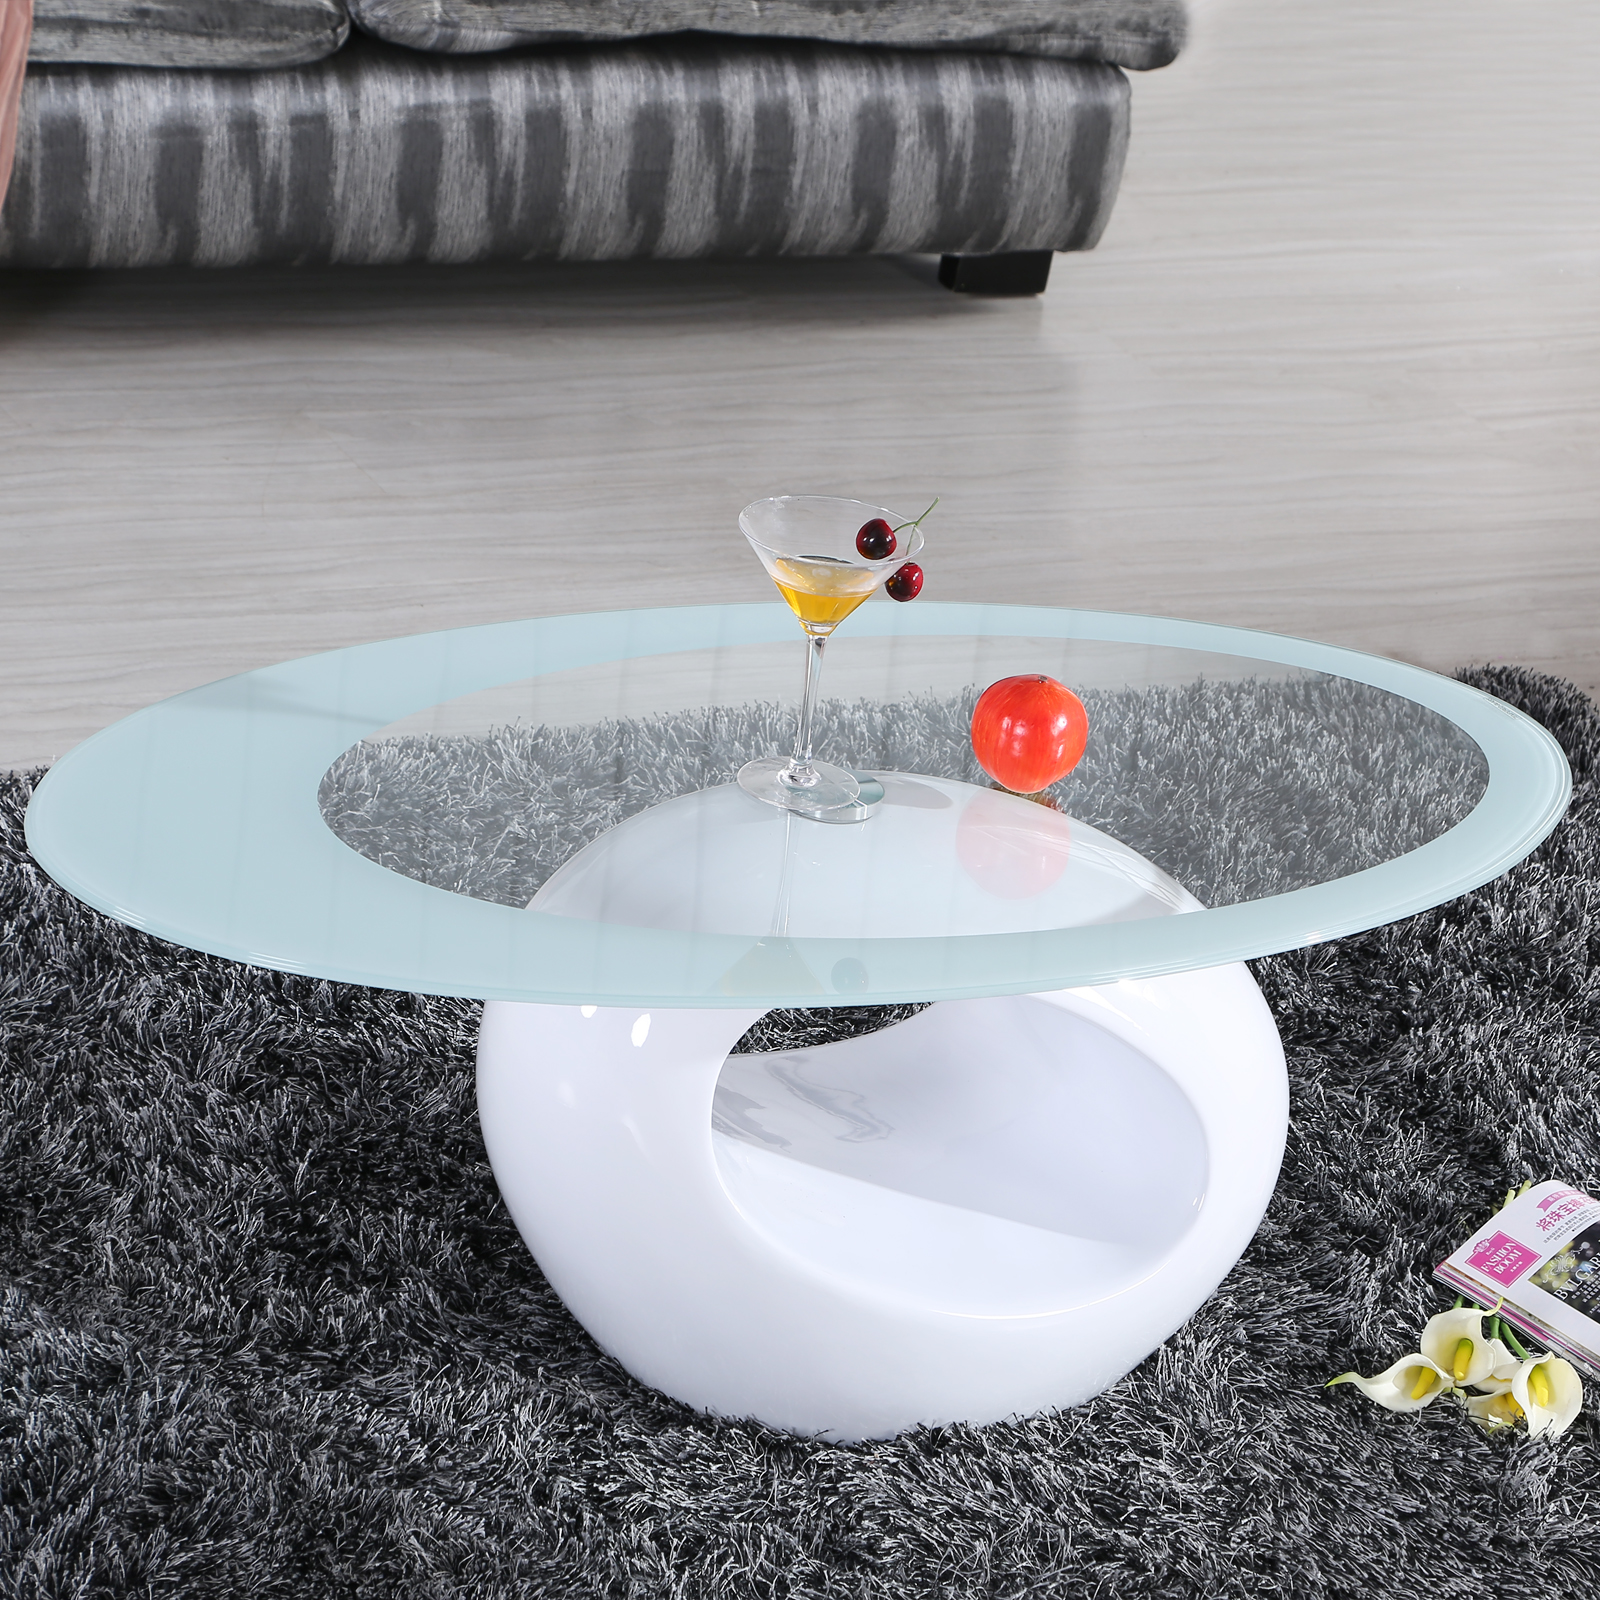 Oval Glass Coffee Table 3 Piece Set Furniture Home Decor: Glass Oval Coffee Table Contemporary Modern Design Living